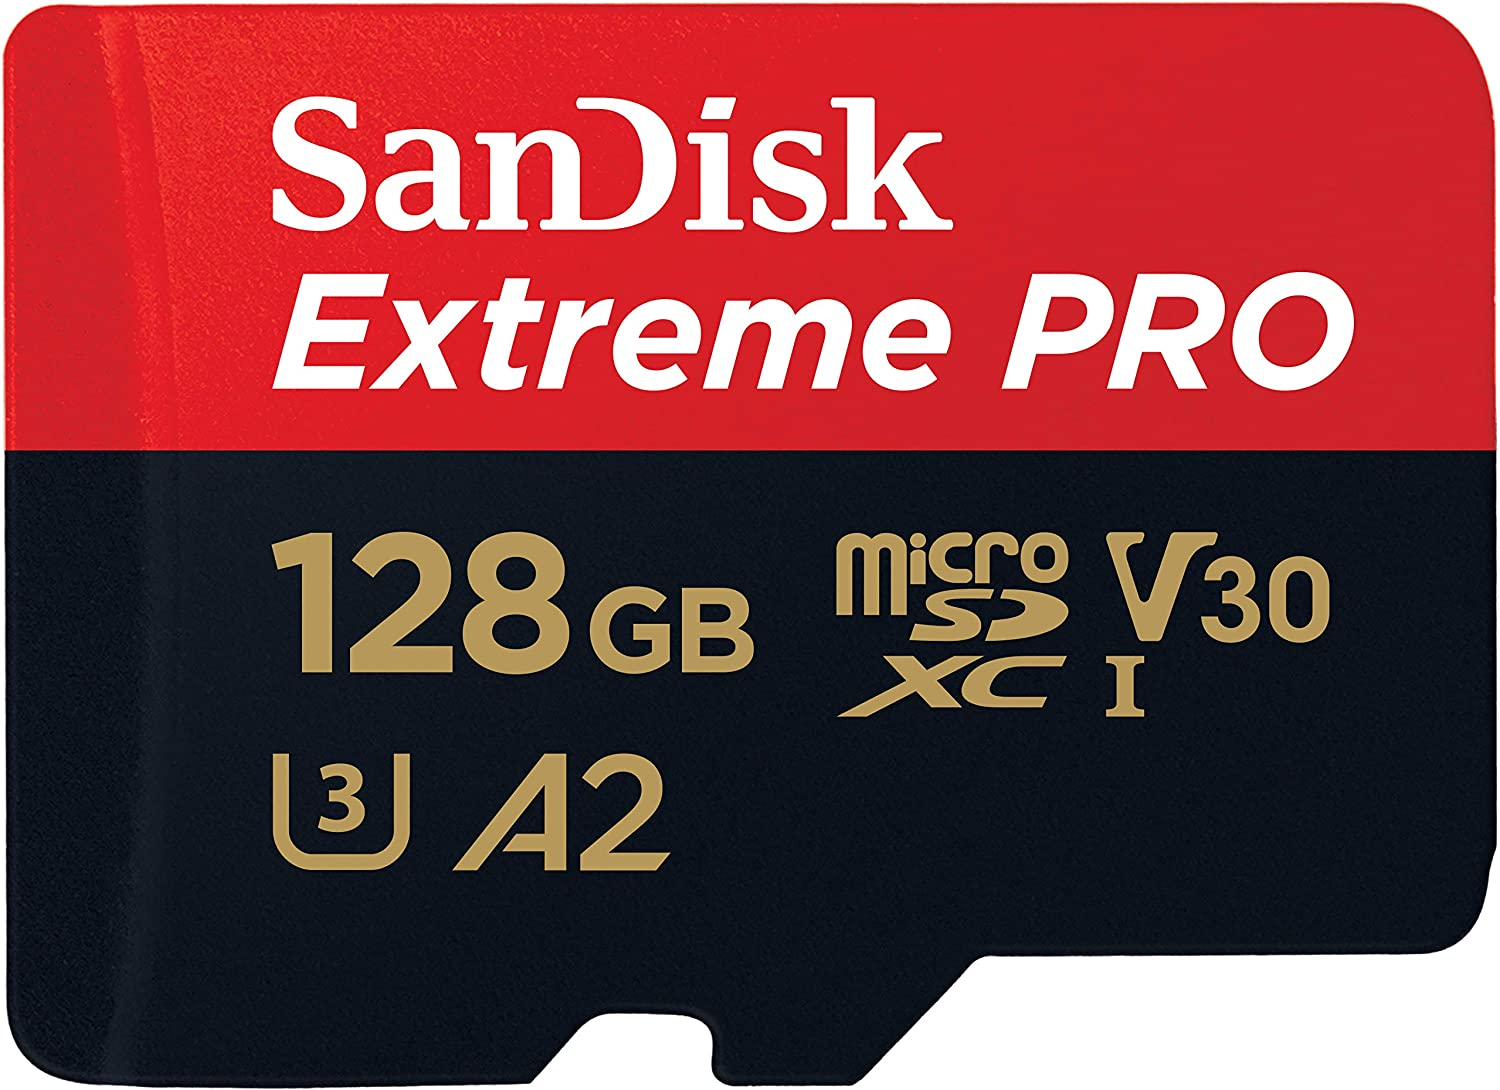 SanDisk Ultra 200GB MicroSDXC Verified for Motorola Droid XYBOARD 8.2 16GB by SanFlash 100MBs A1 U1 C10 Works with SanDisk